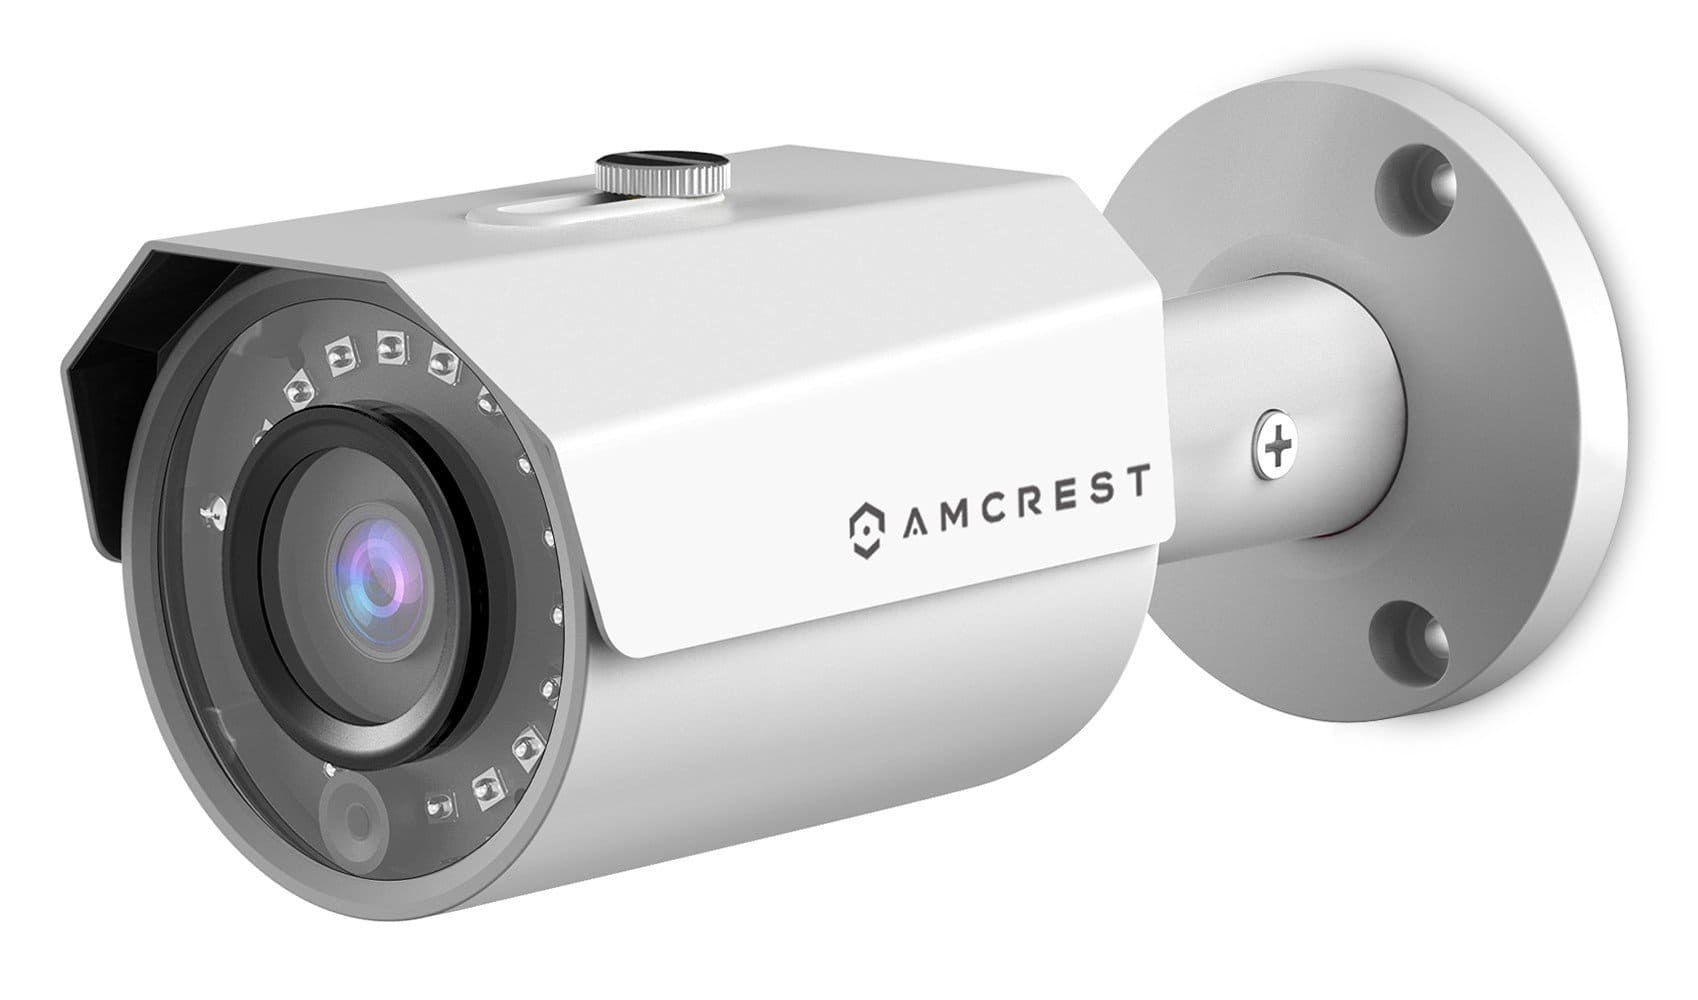 Amcrest ProHD 4MP POE Security Bullet Camera IP4M-1024E: $76.50 W/ 10% Off First Order + Free S/H